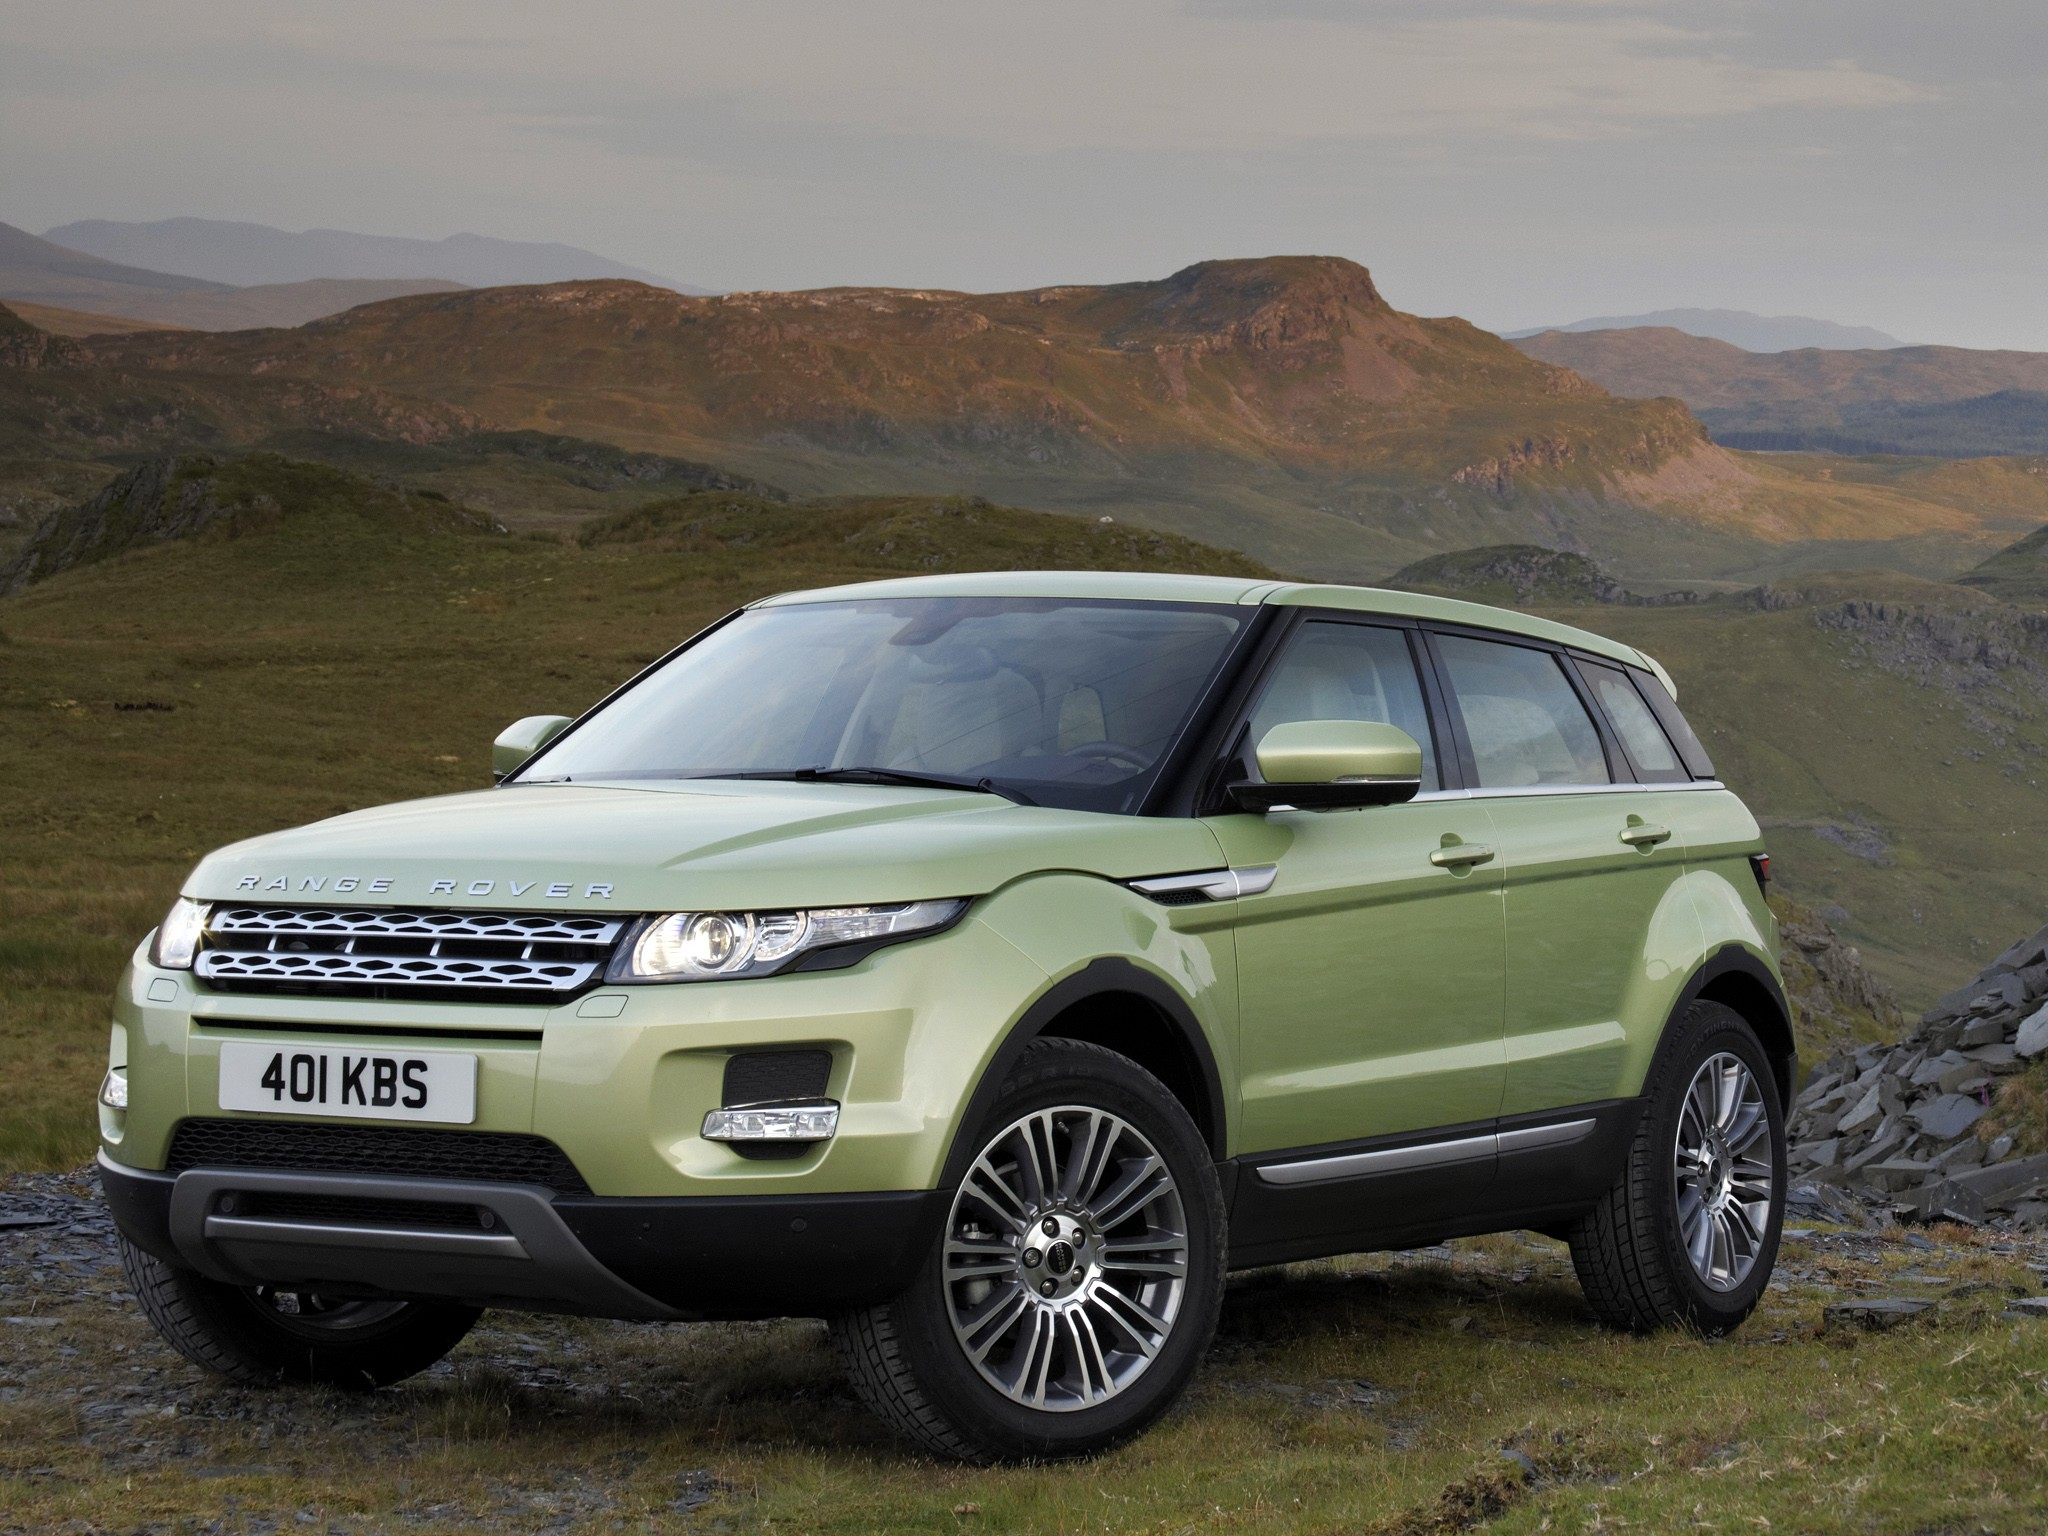 land rover range rover evoque 5 door 2011 2012 2013 2014 2015 autoevolution. Black Bedroom Furniture Sets. Home Design Ideas